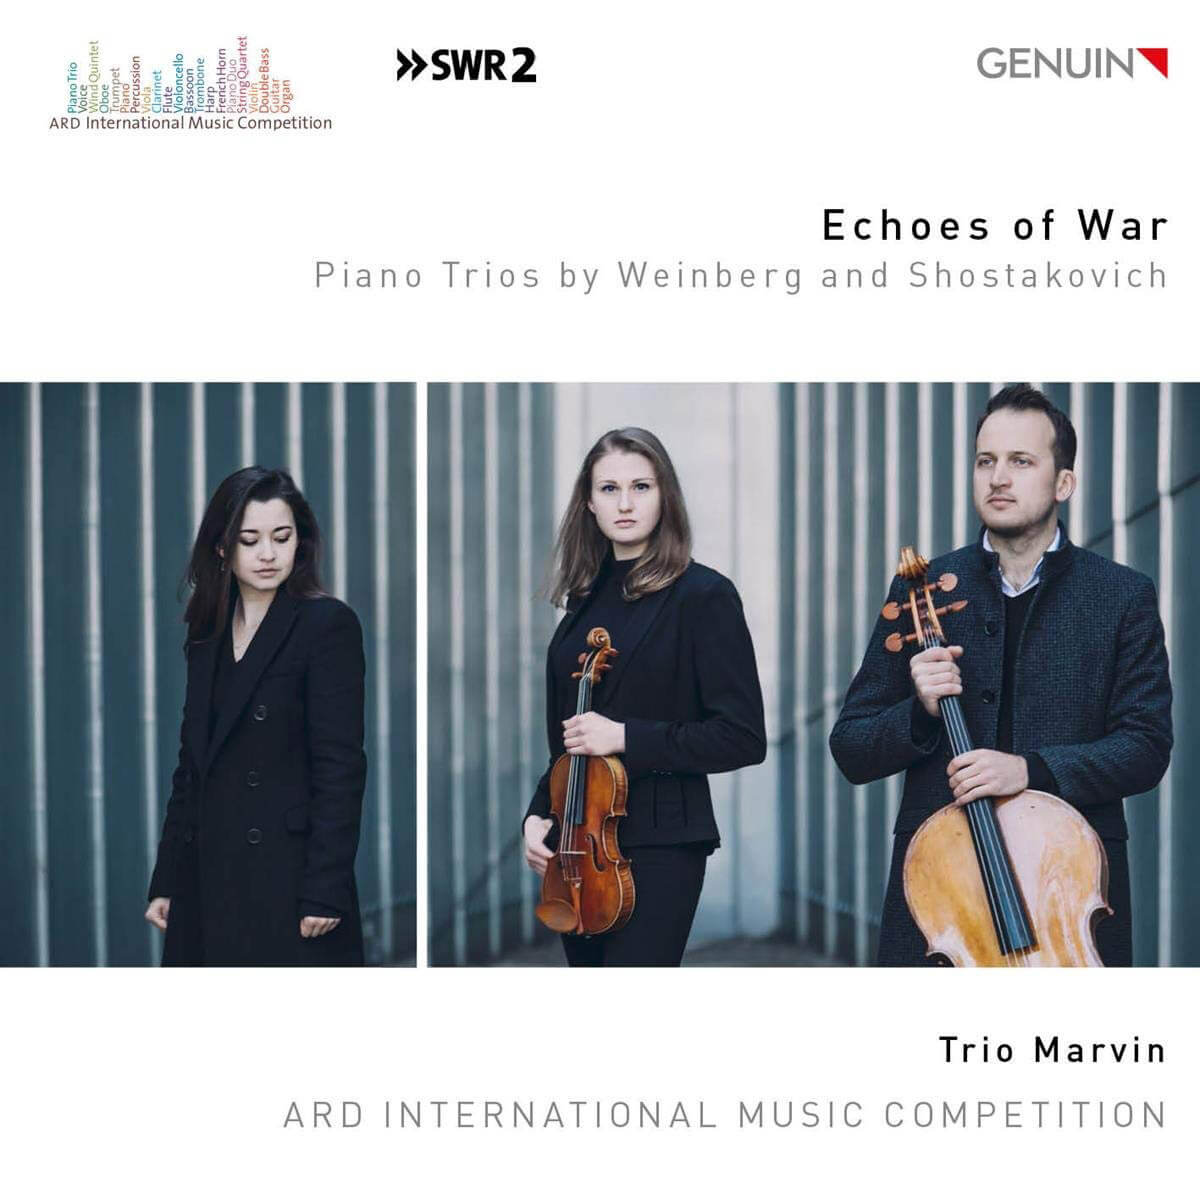 Echoes of War: Piano Trios by Weinberg and Shostakovich